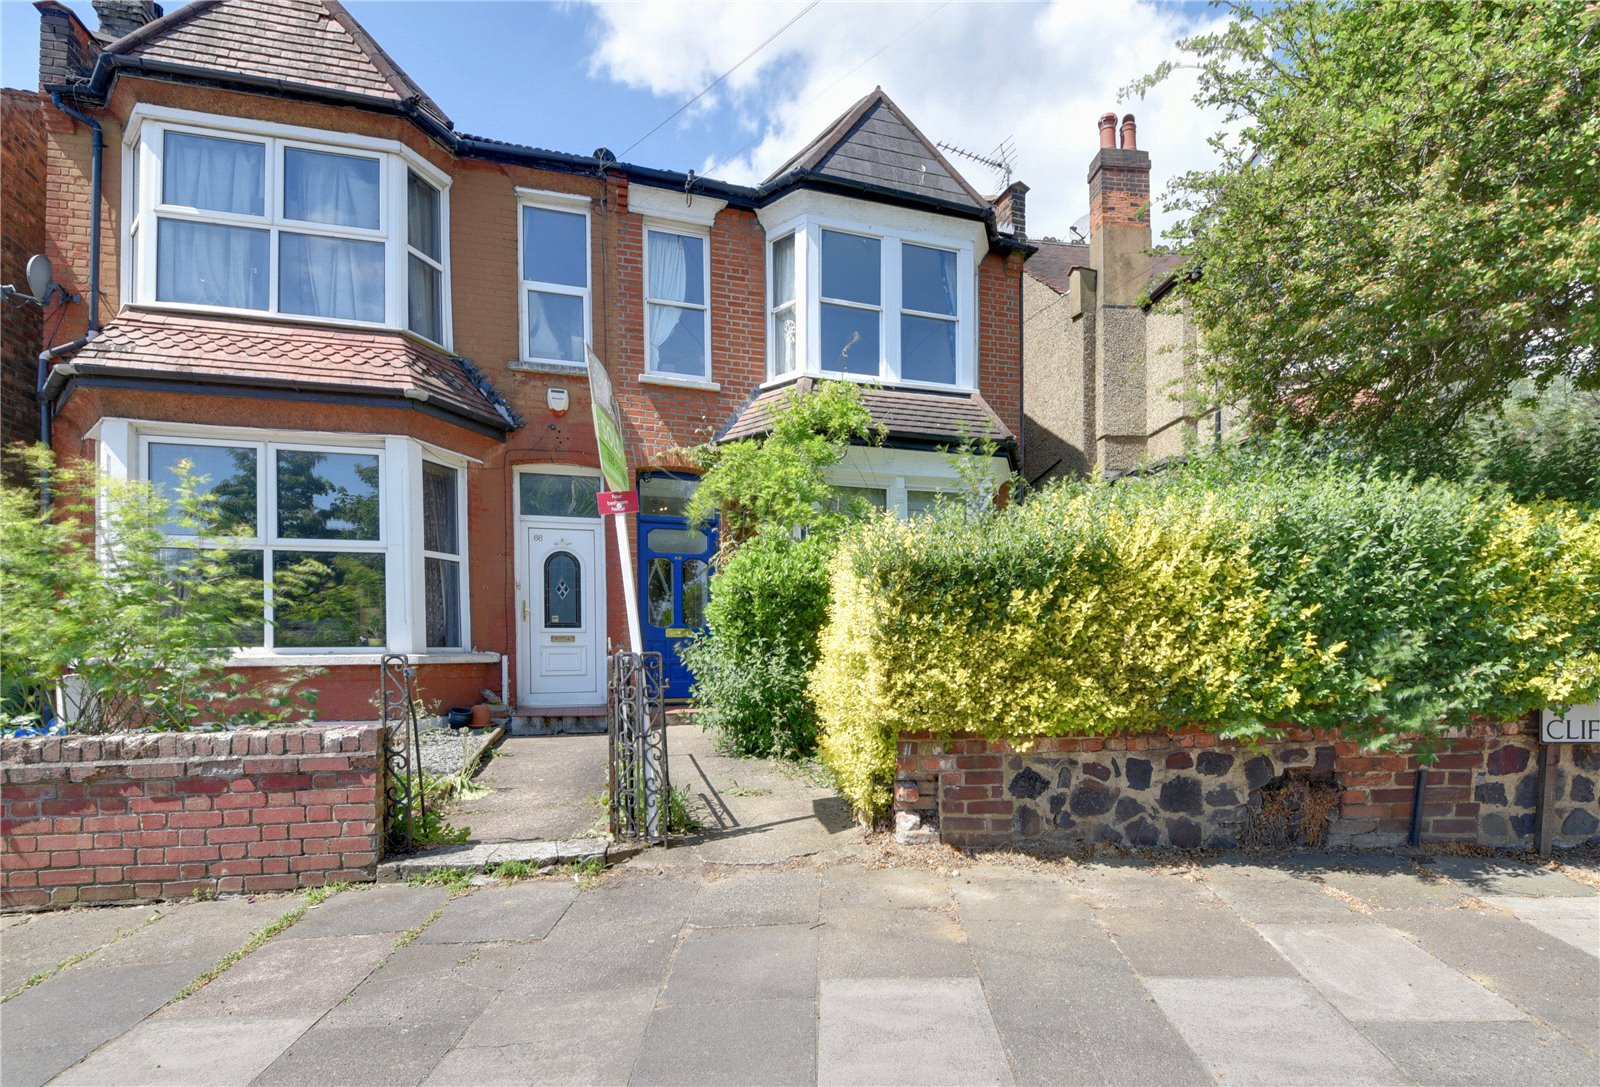 4 bed house for sale in Finchley, N3 2AR - Property Image 1